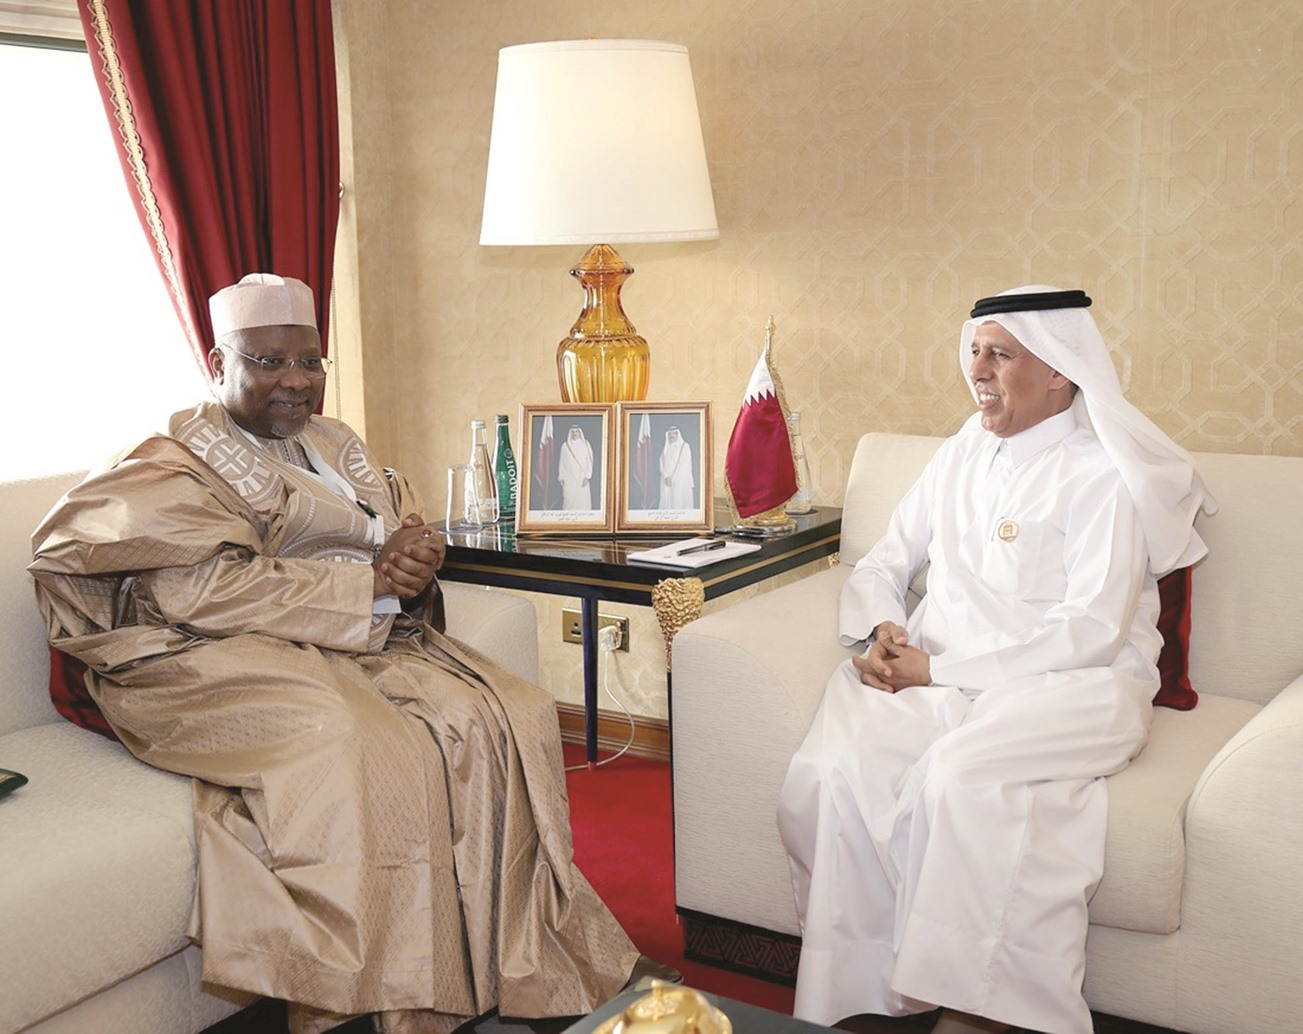 PUIC Secretary General meets with the Speaker of the Shura Council of the State of Qatar